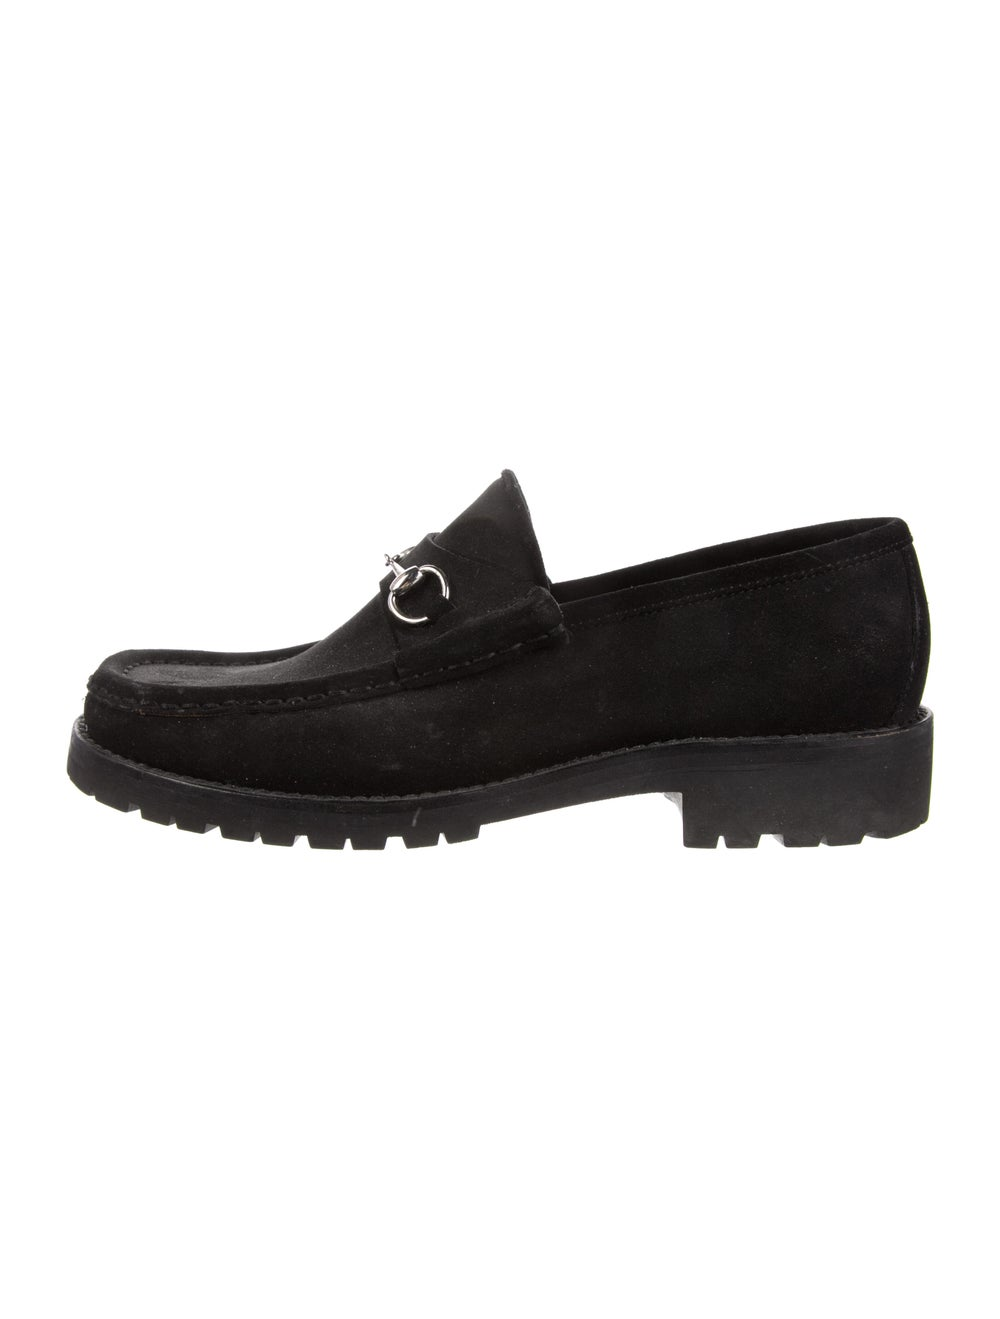 Gucci 1955 Horsebit Accent Suede Loafers Black - image 1